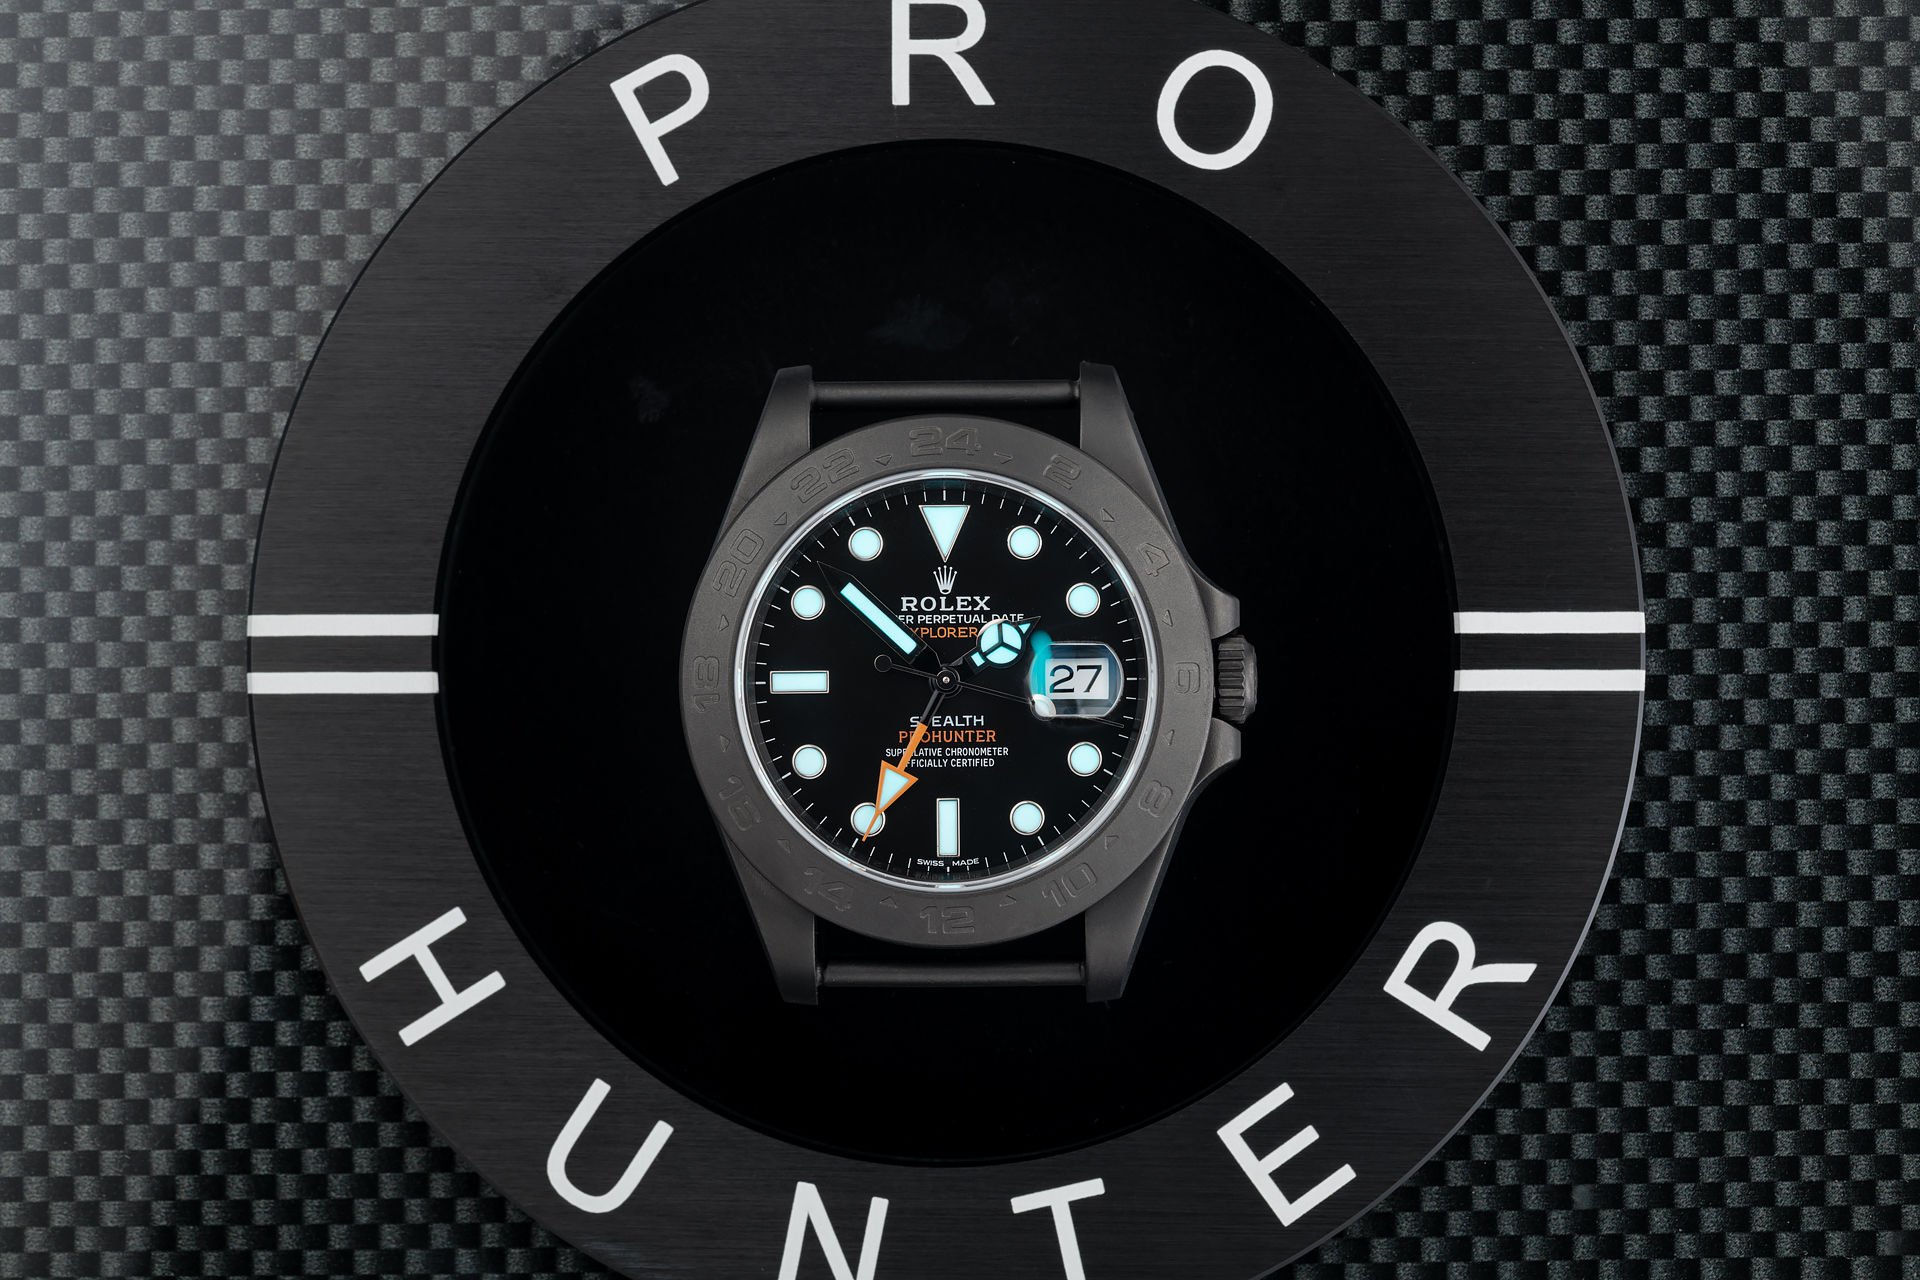 ref 216570 | Military 'Stealth McQueen' | Pro Hunter Explorer II